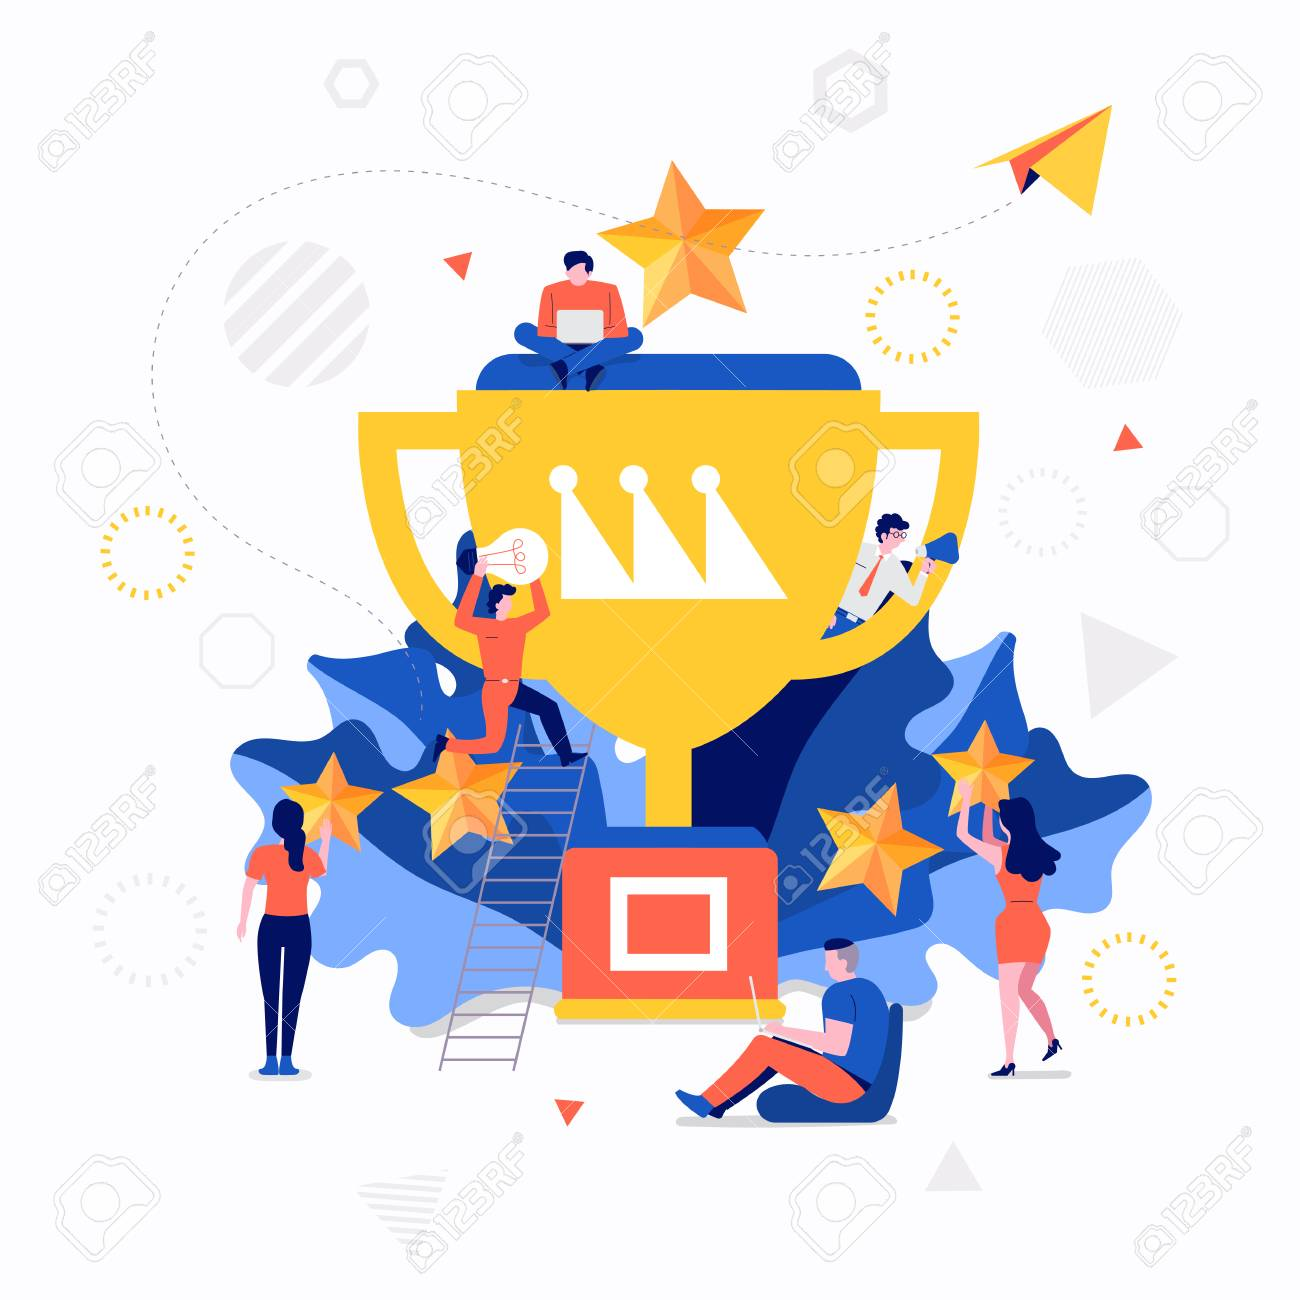 Illustrations flat design concept small people working together create big icon about business success. Vector illustrate. - 110250259